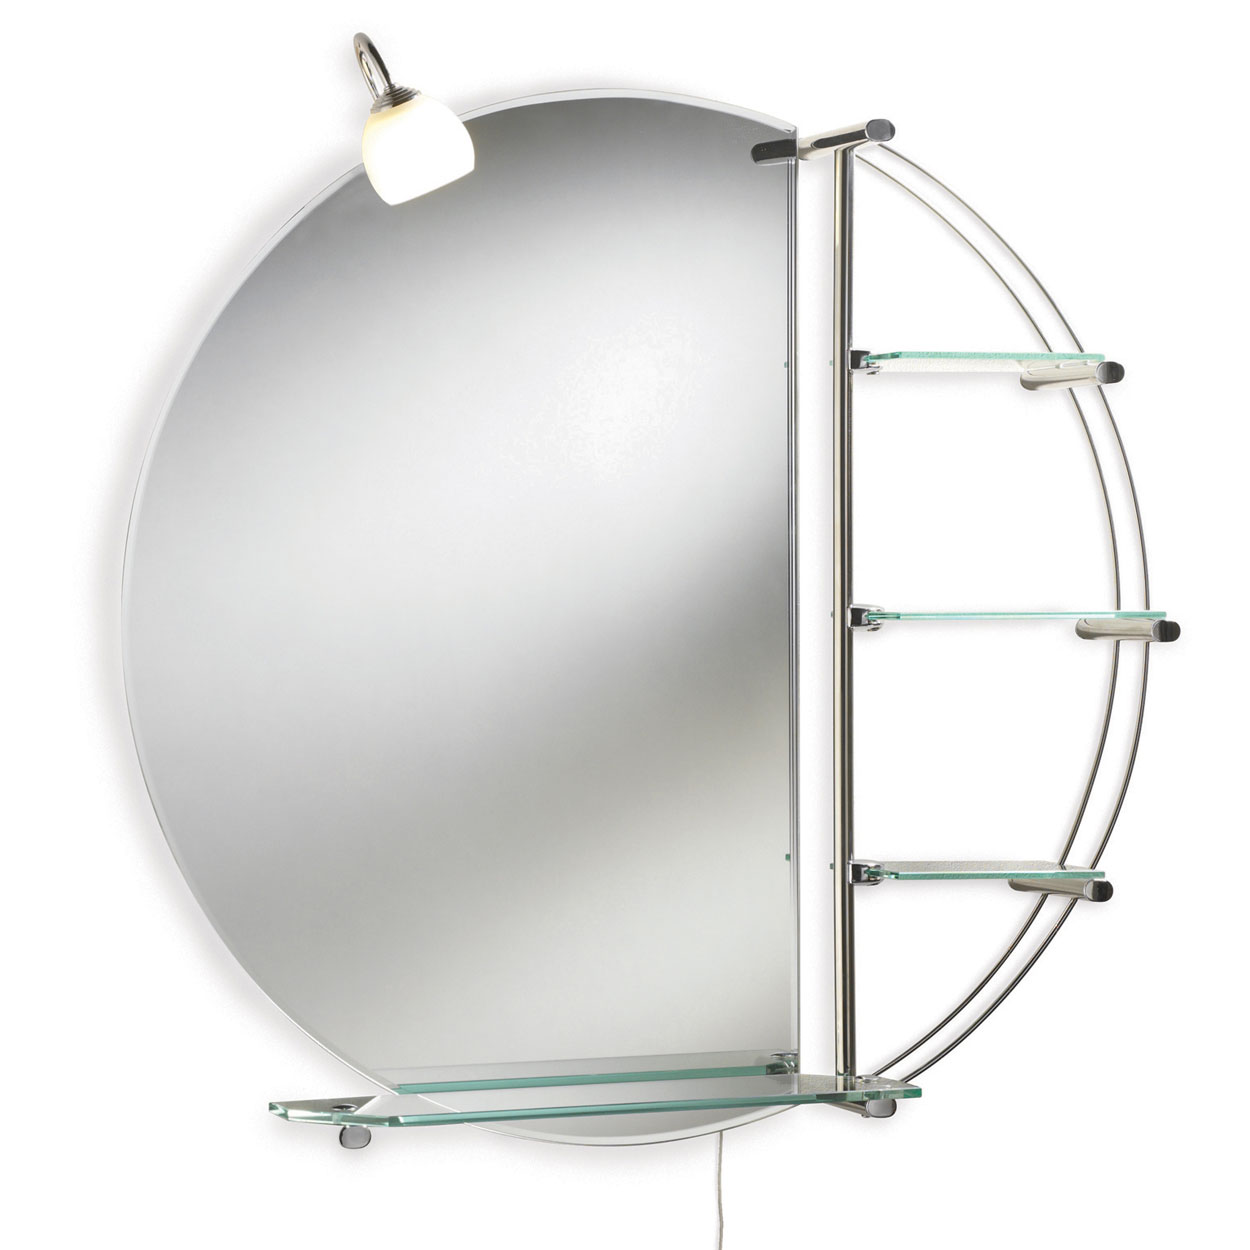 Premier Magnum Bathroom Mirror with Shelf, 800mm High x 800mm Wide, Stainless Steel-0